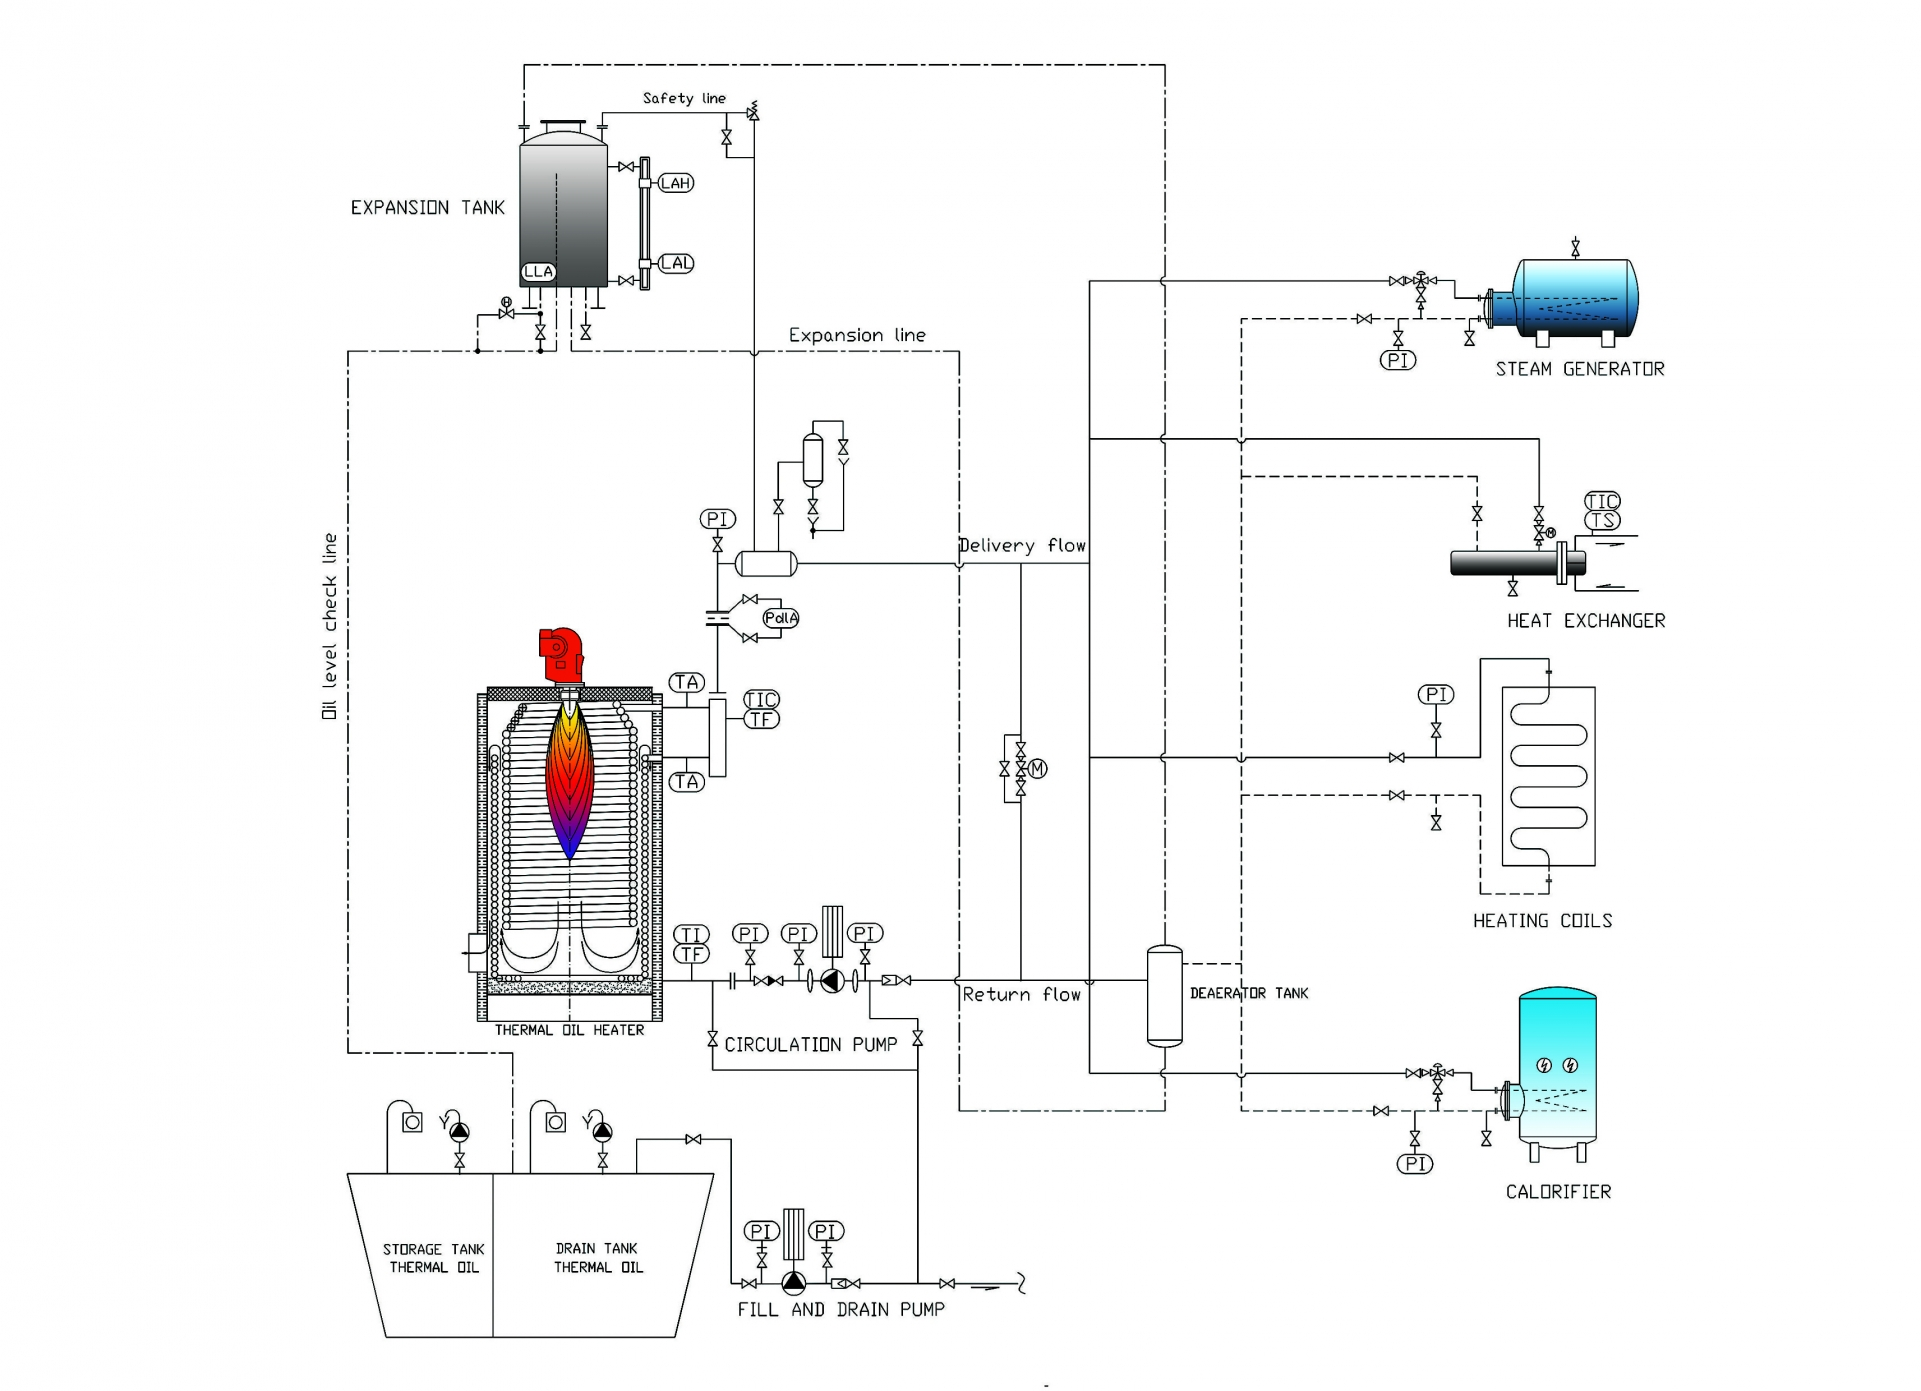 thermal fluid heater - gesab